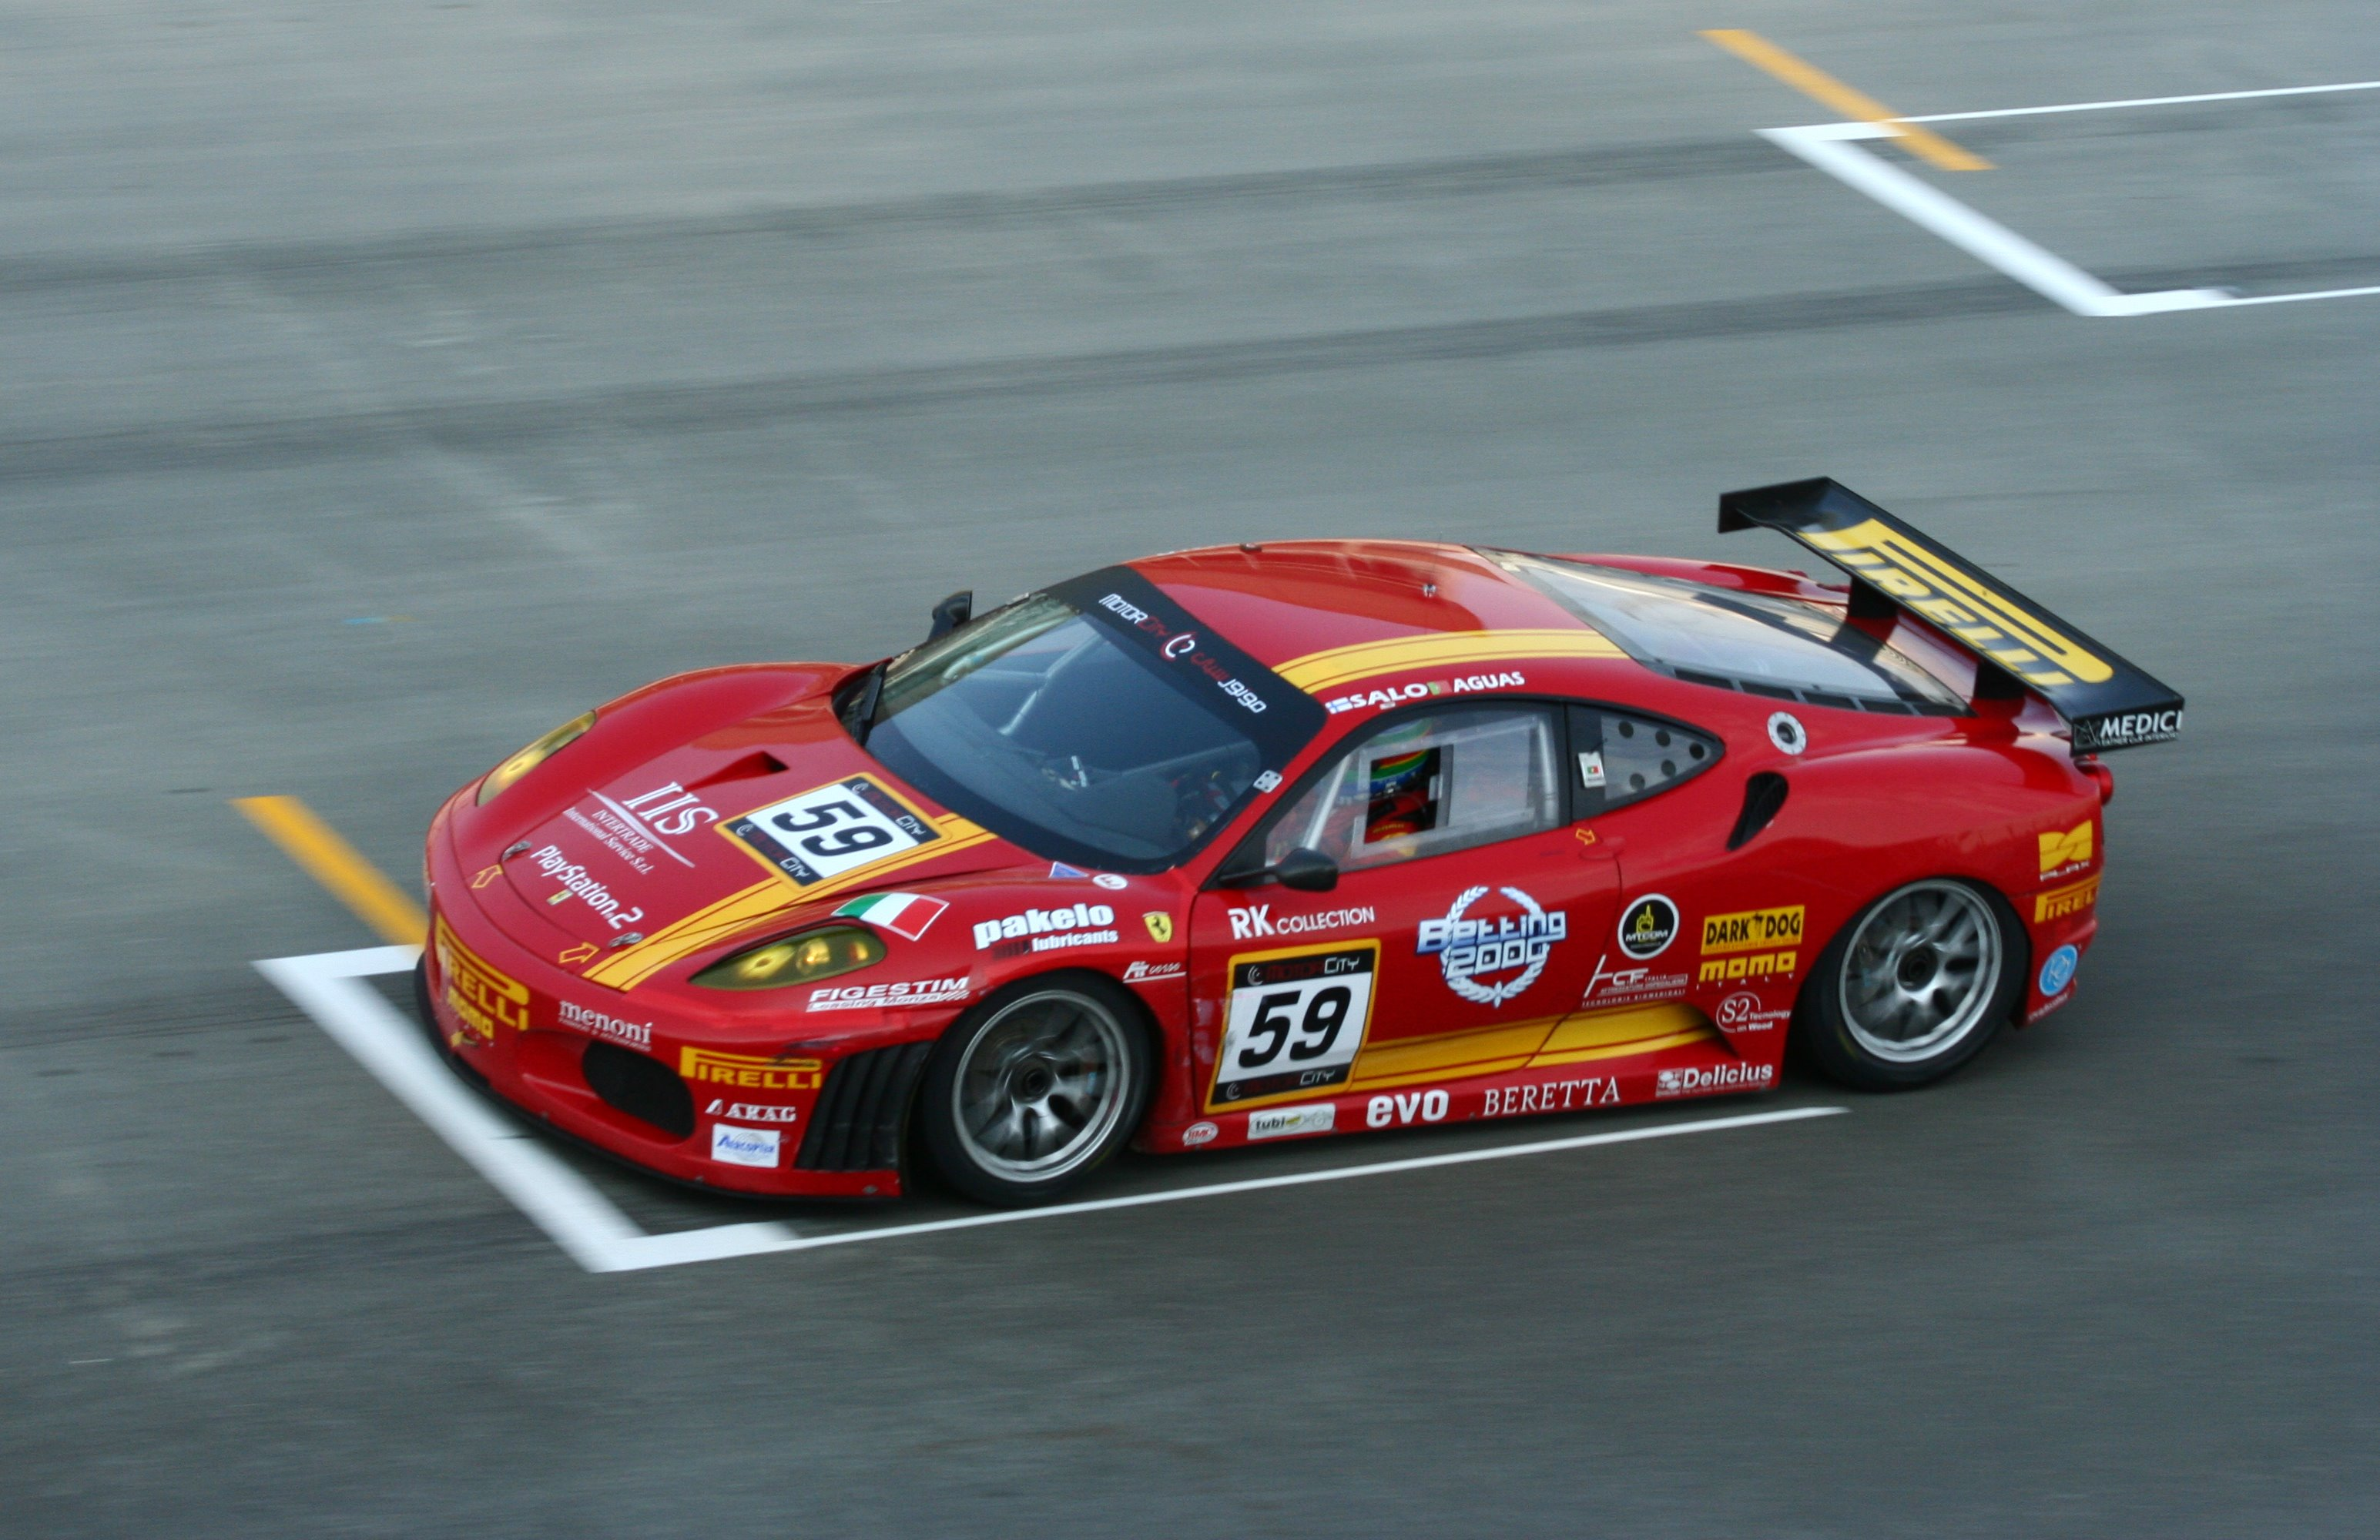 Racing Car Hd Wallpaper Free Download Af Corse Wikiwand